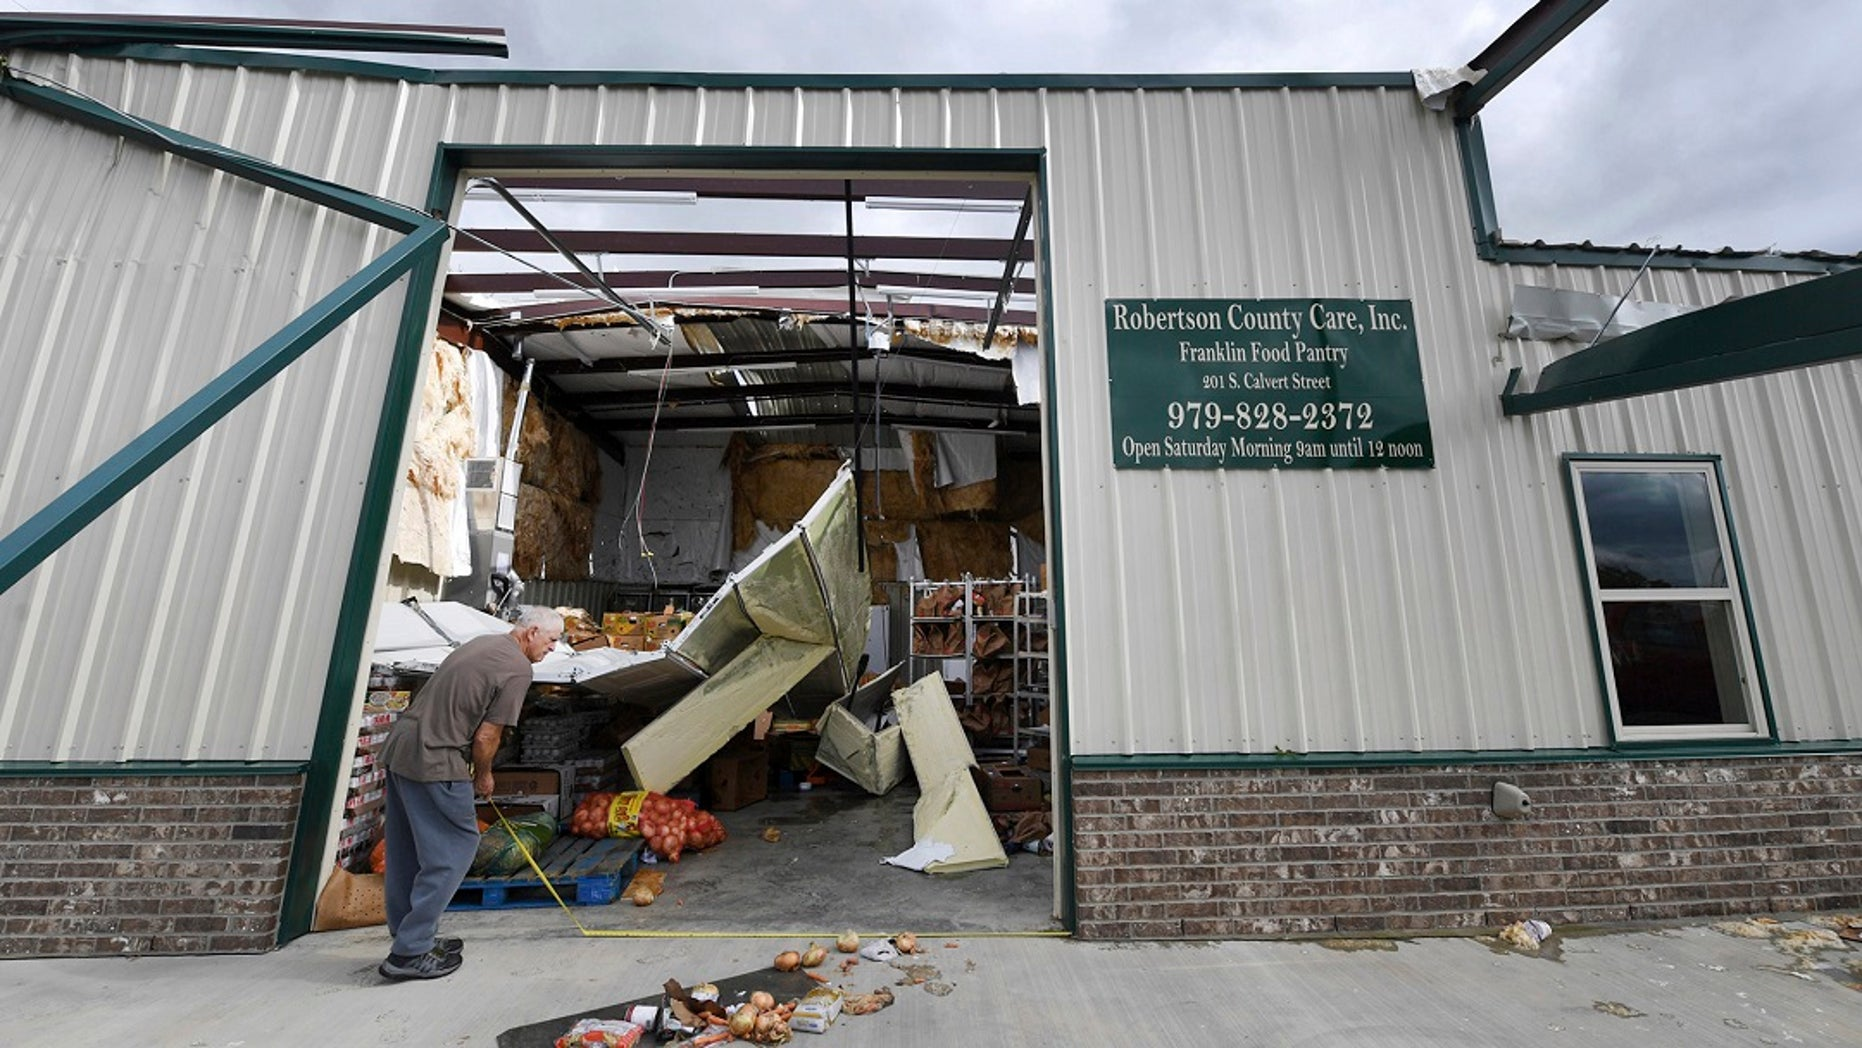 Jerry Redden takes a measurement outside Robertson County Care, Inc., after the food pantry was hit by a powerful storm, Saturday in Franklin, Texas. (Associated Press)